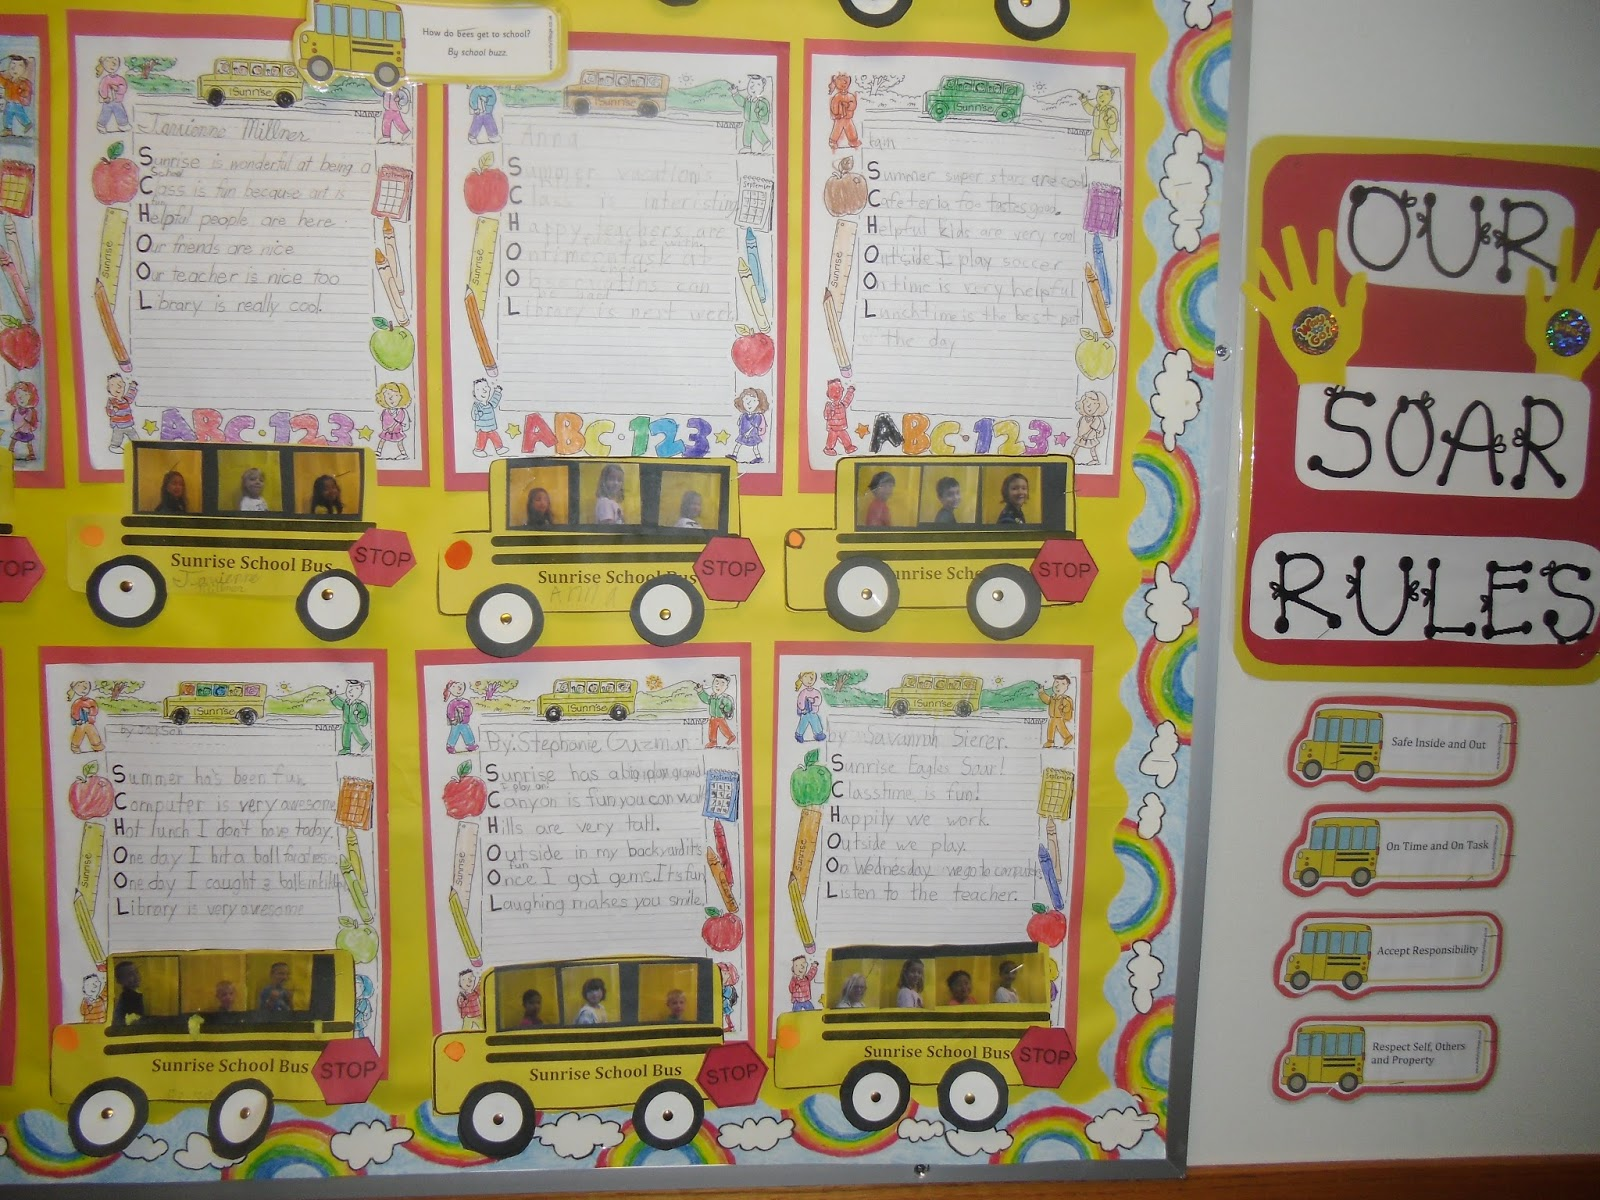 patties classroom school rules acrostic poetry school rules acrostic poetry